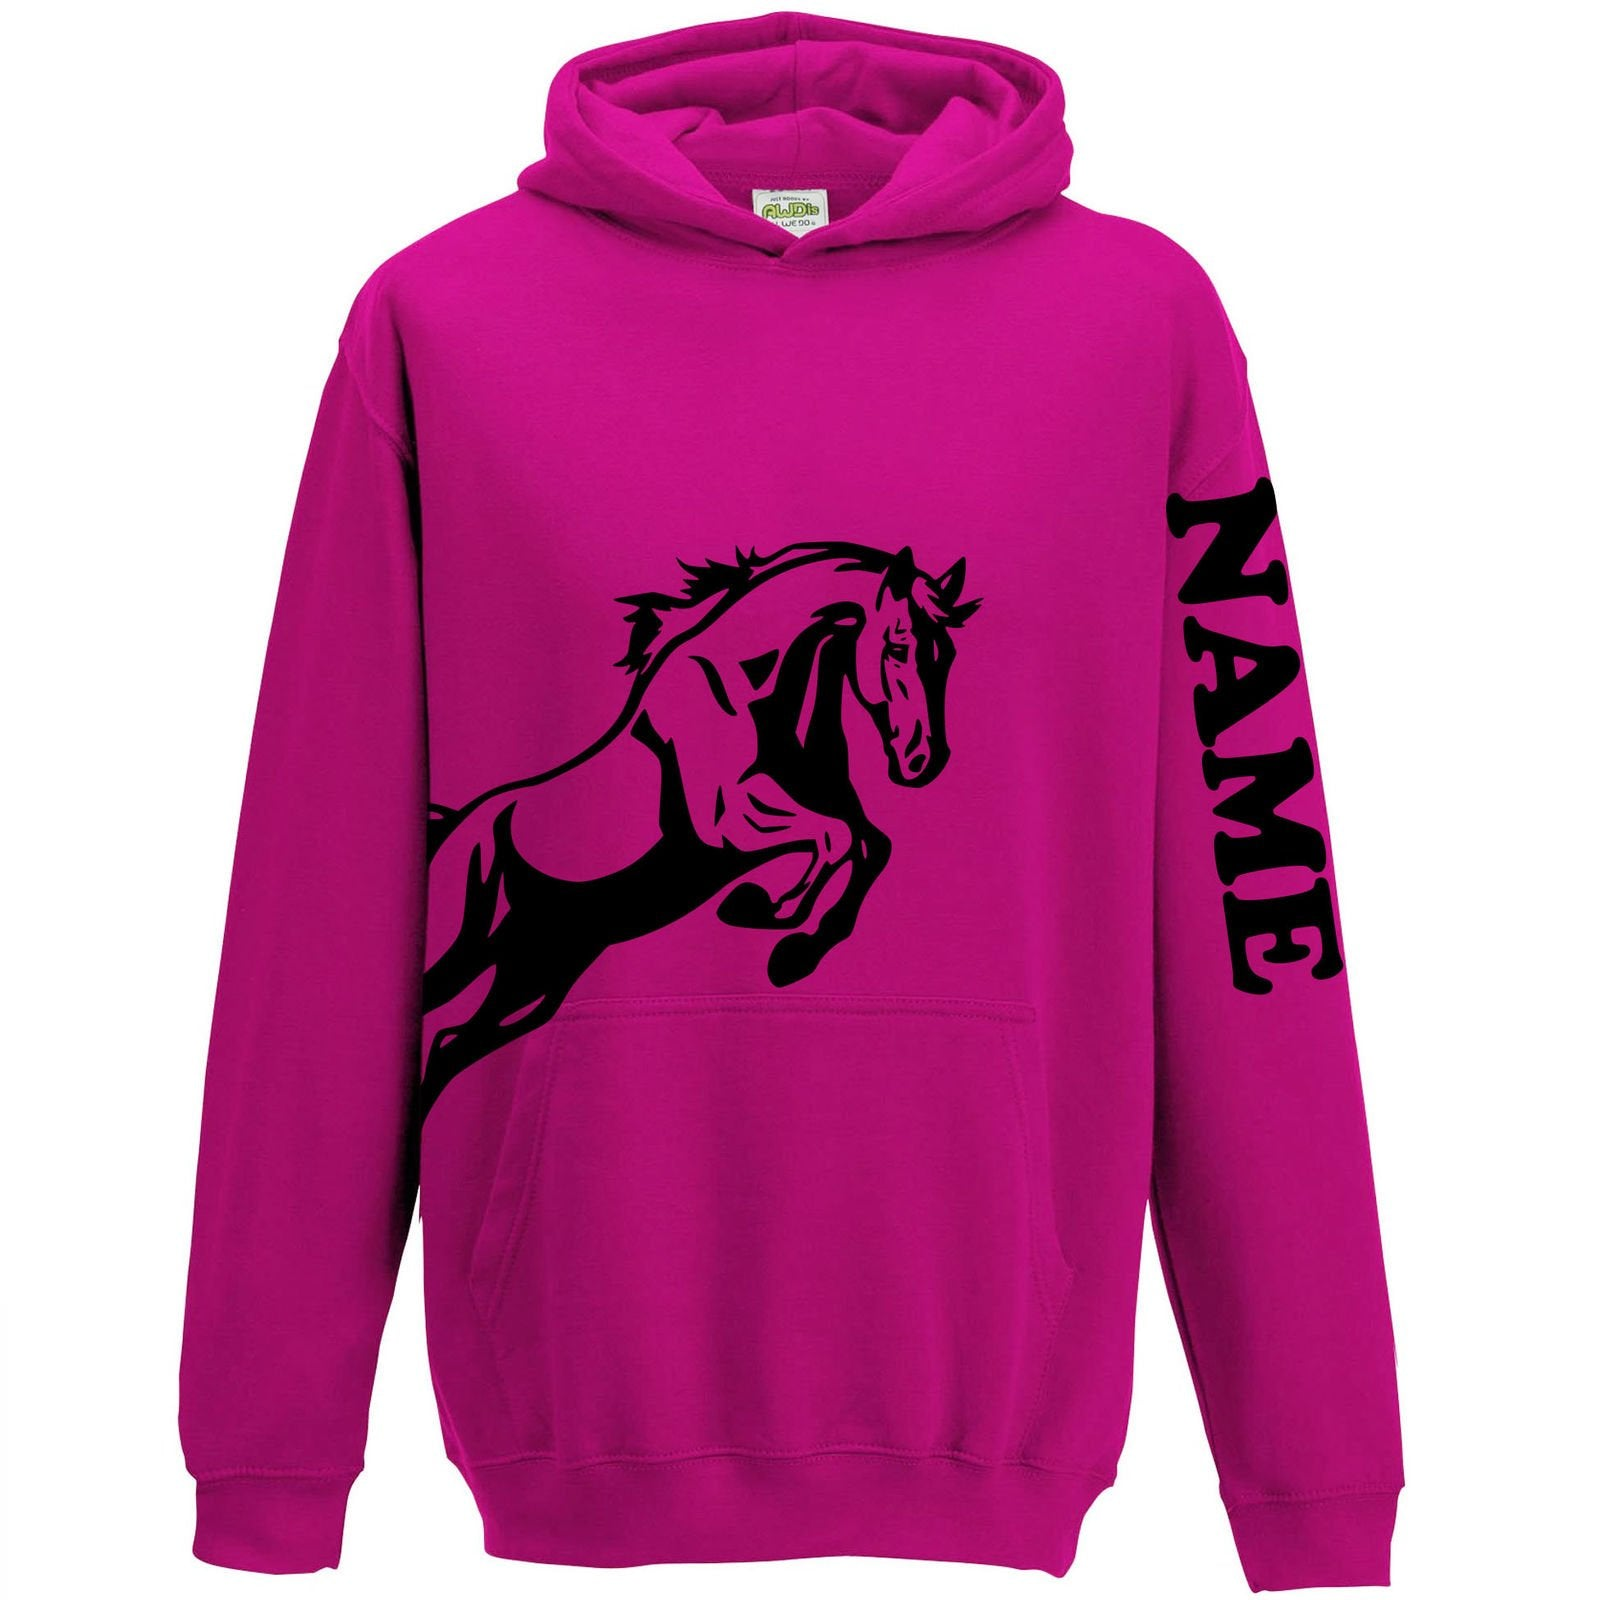 Personalised Equestrian Hooded Jumper for Girls - Deep Pink